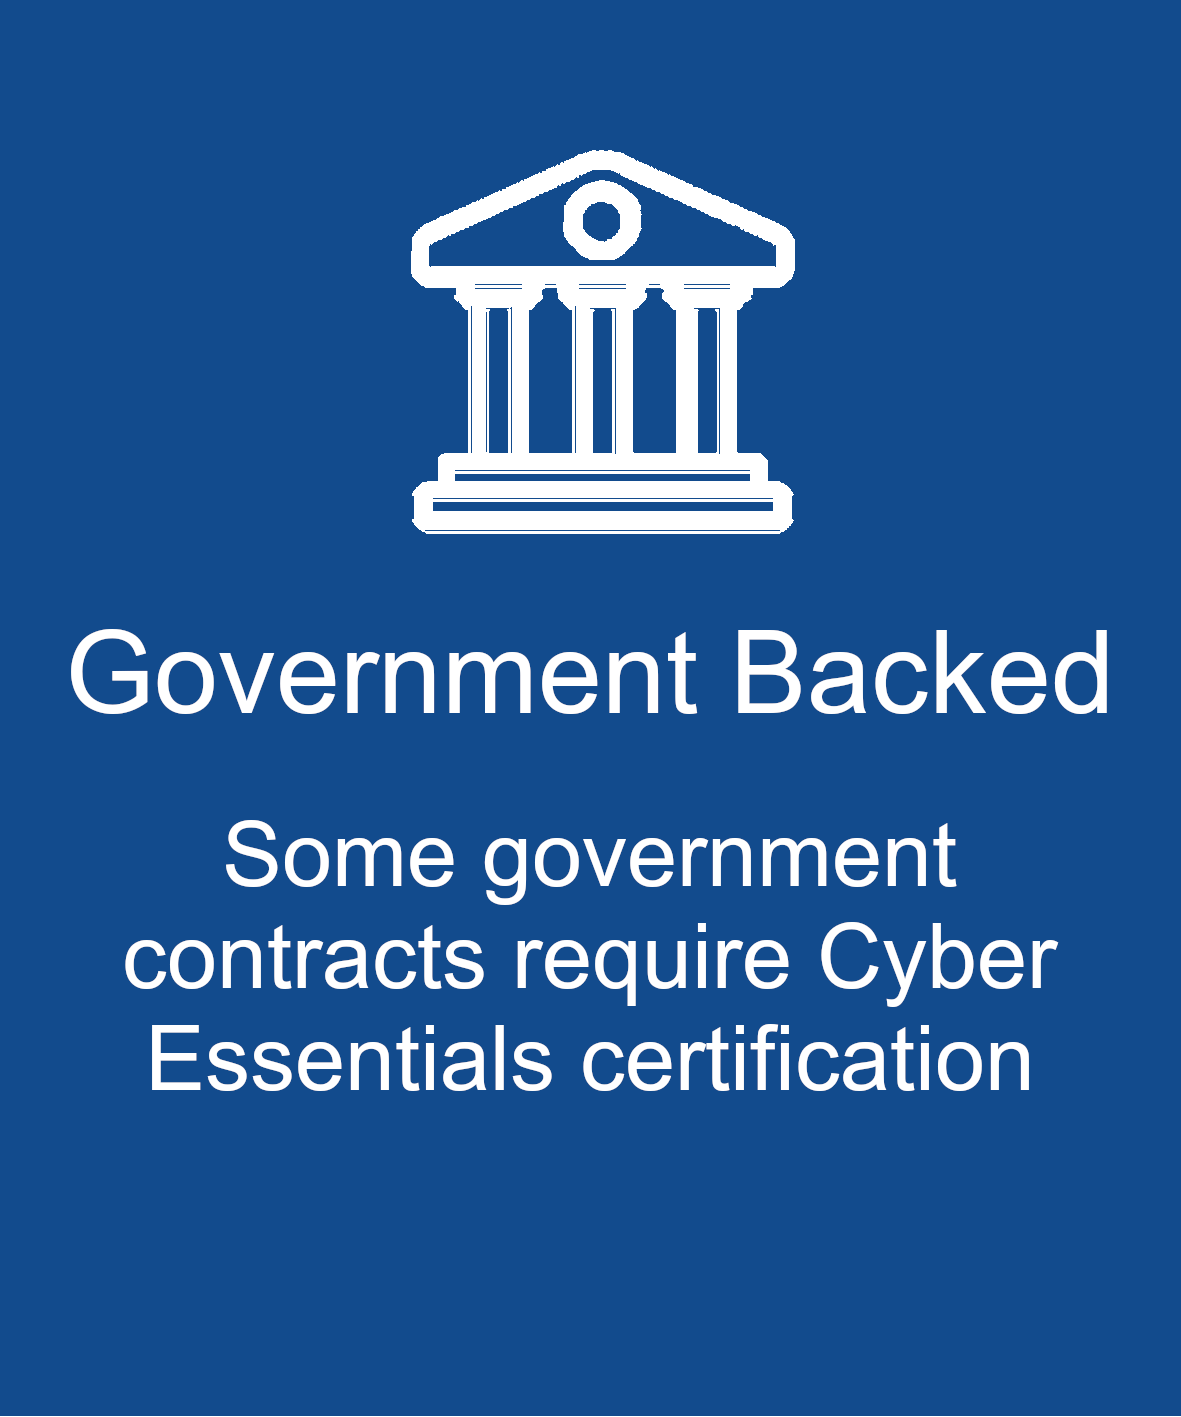 Government backed